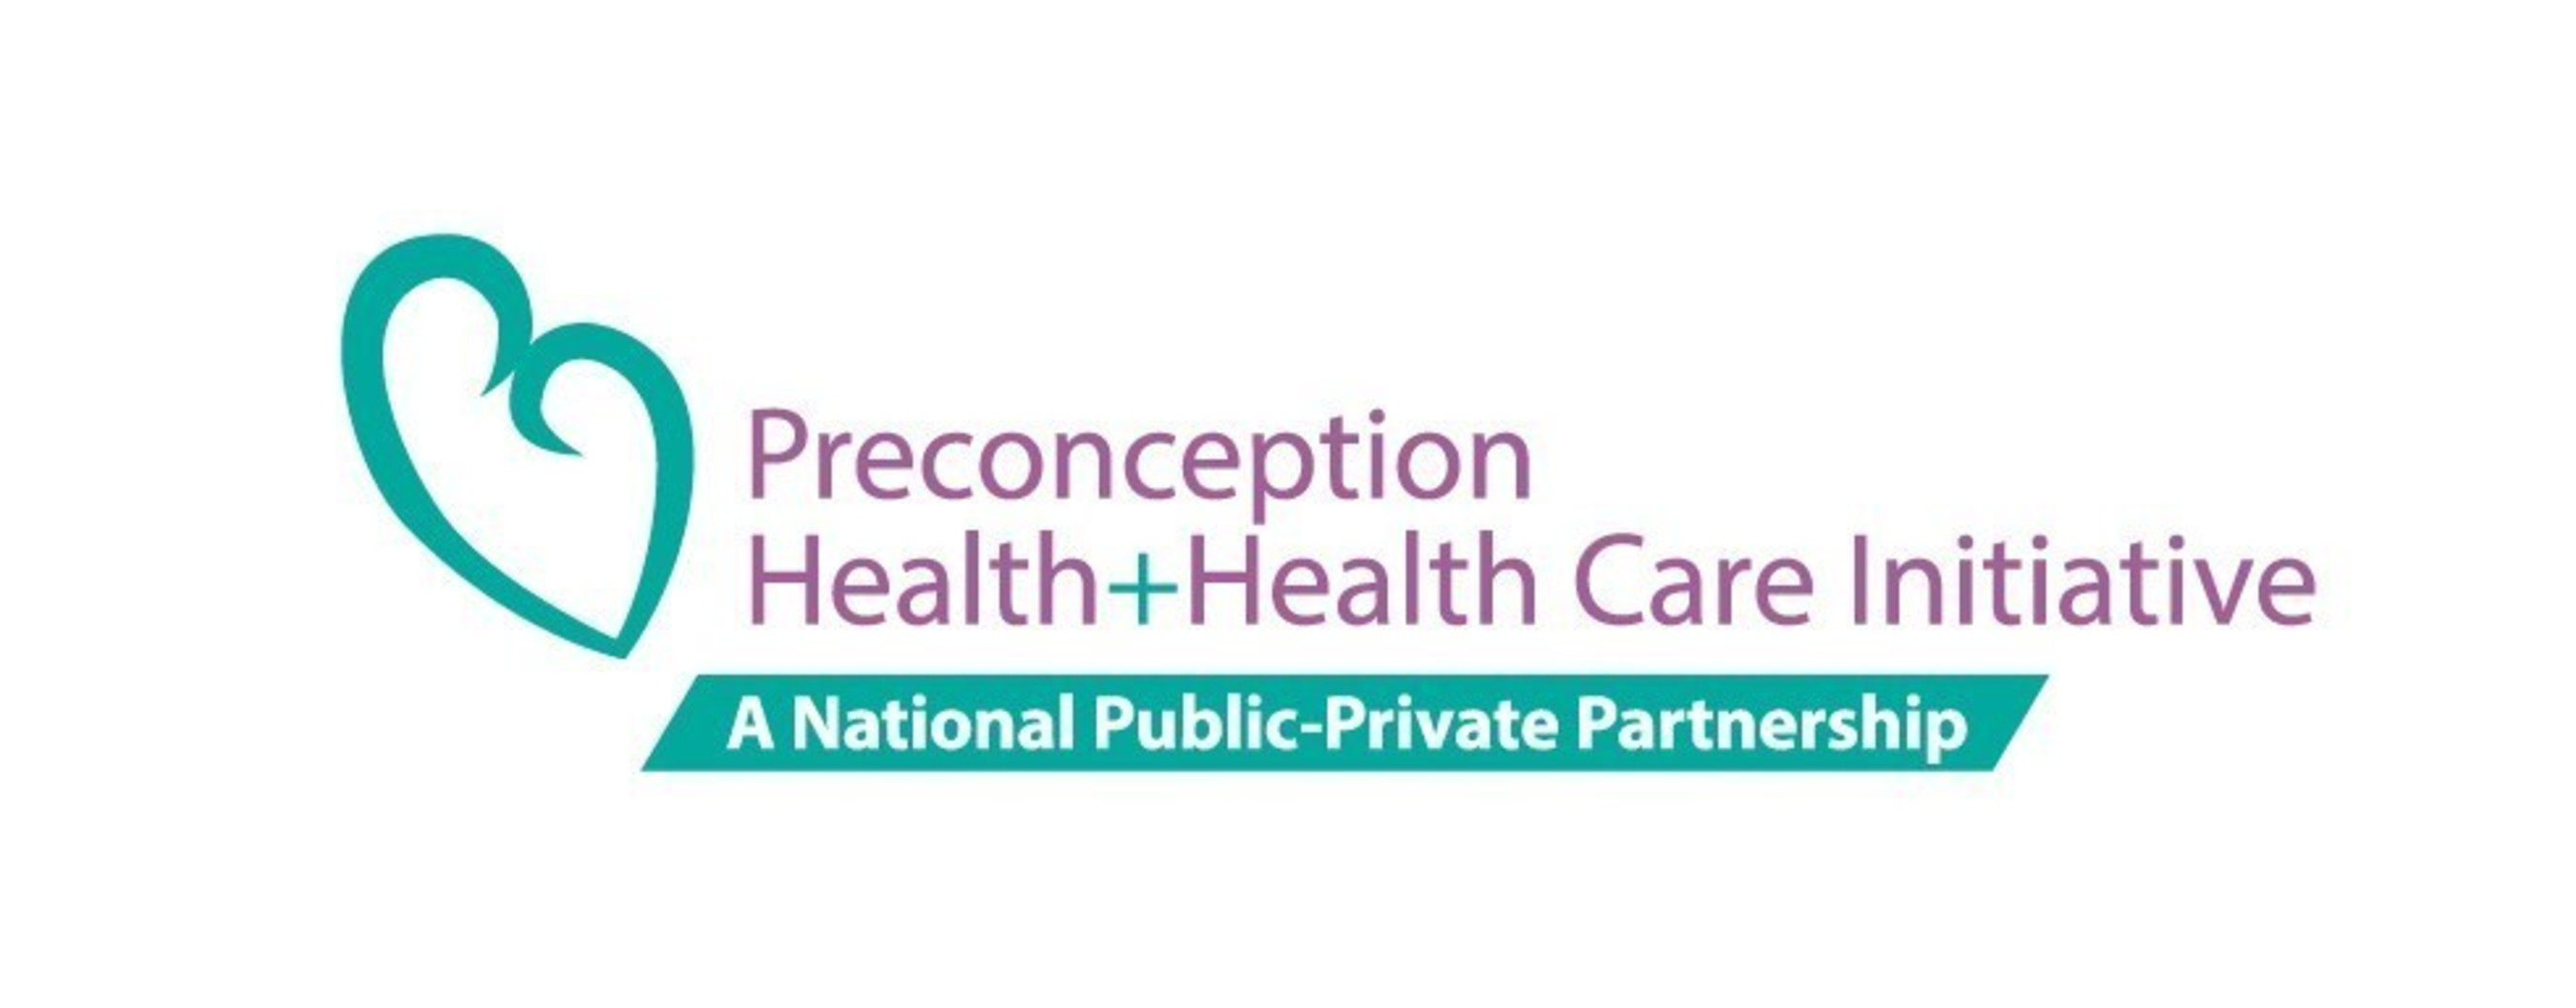 The National Preconception Health and Health Care Initiative